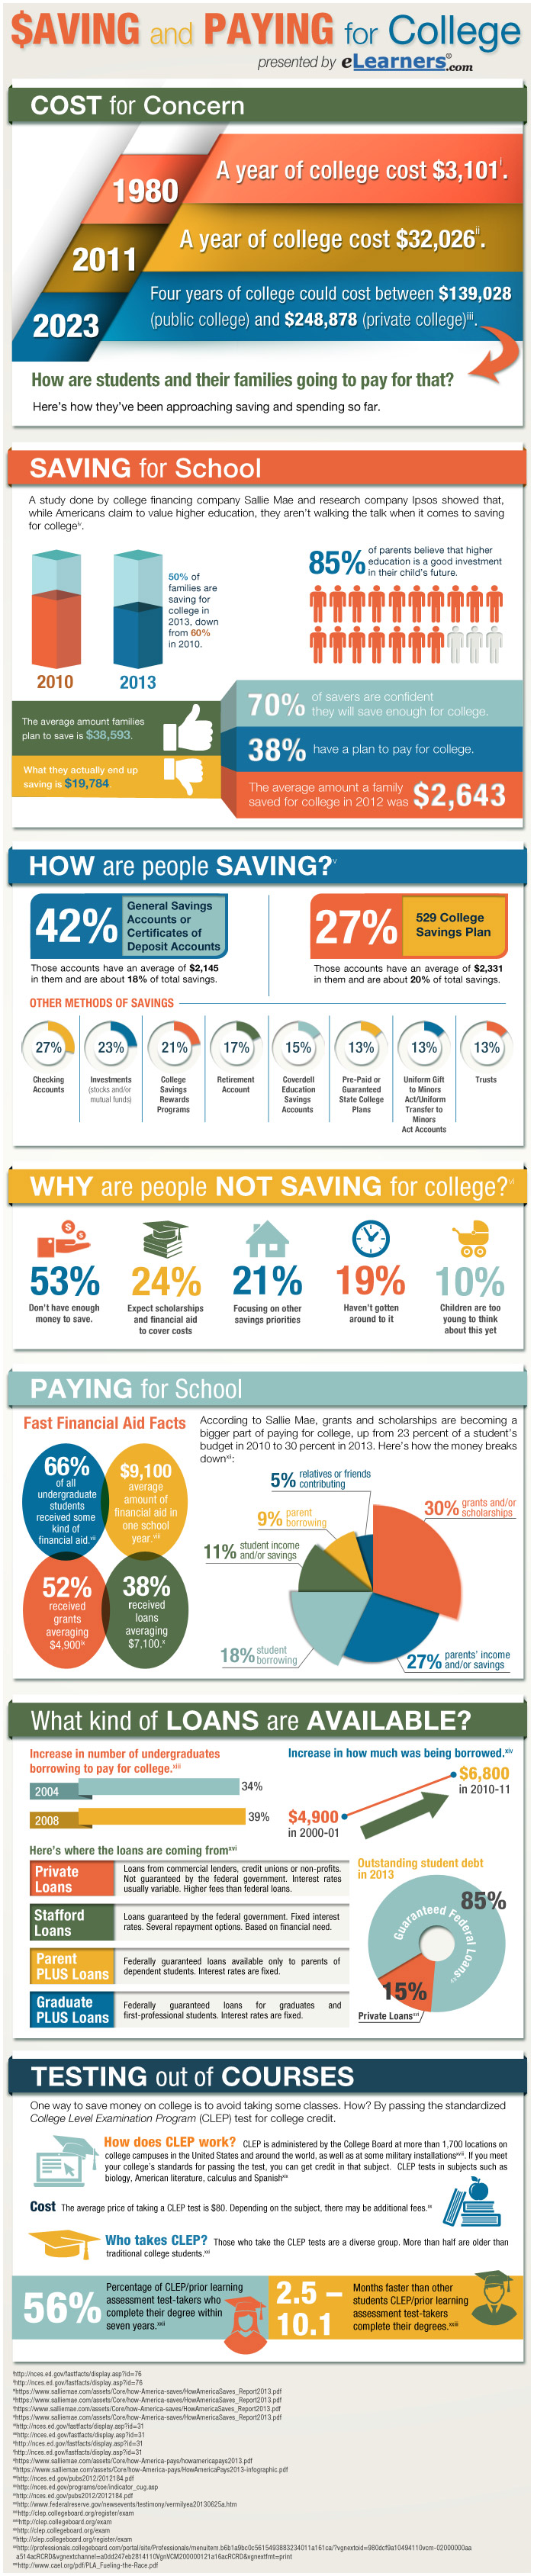 how to pay for college - Saving and paying for college